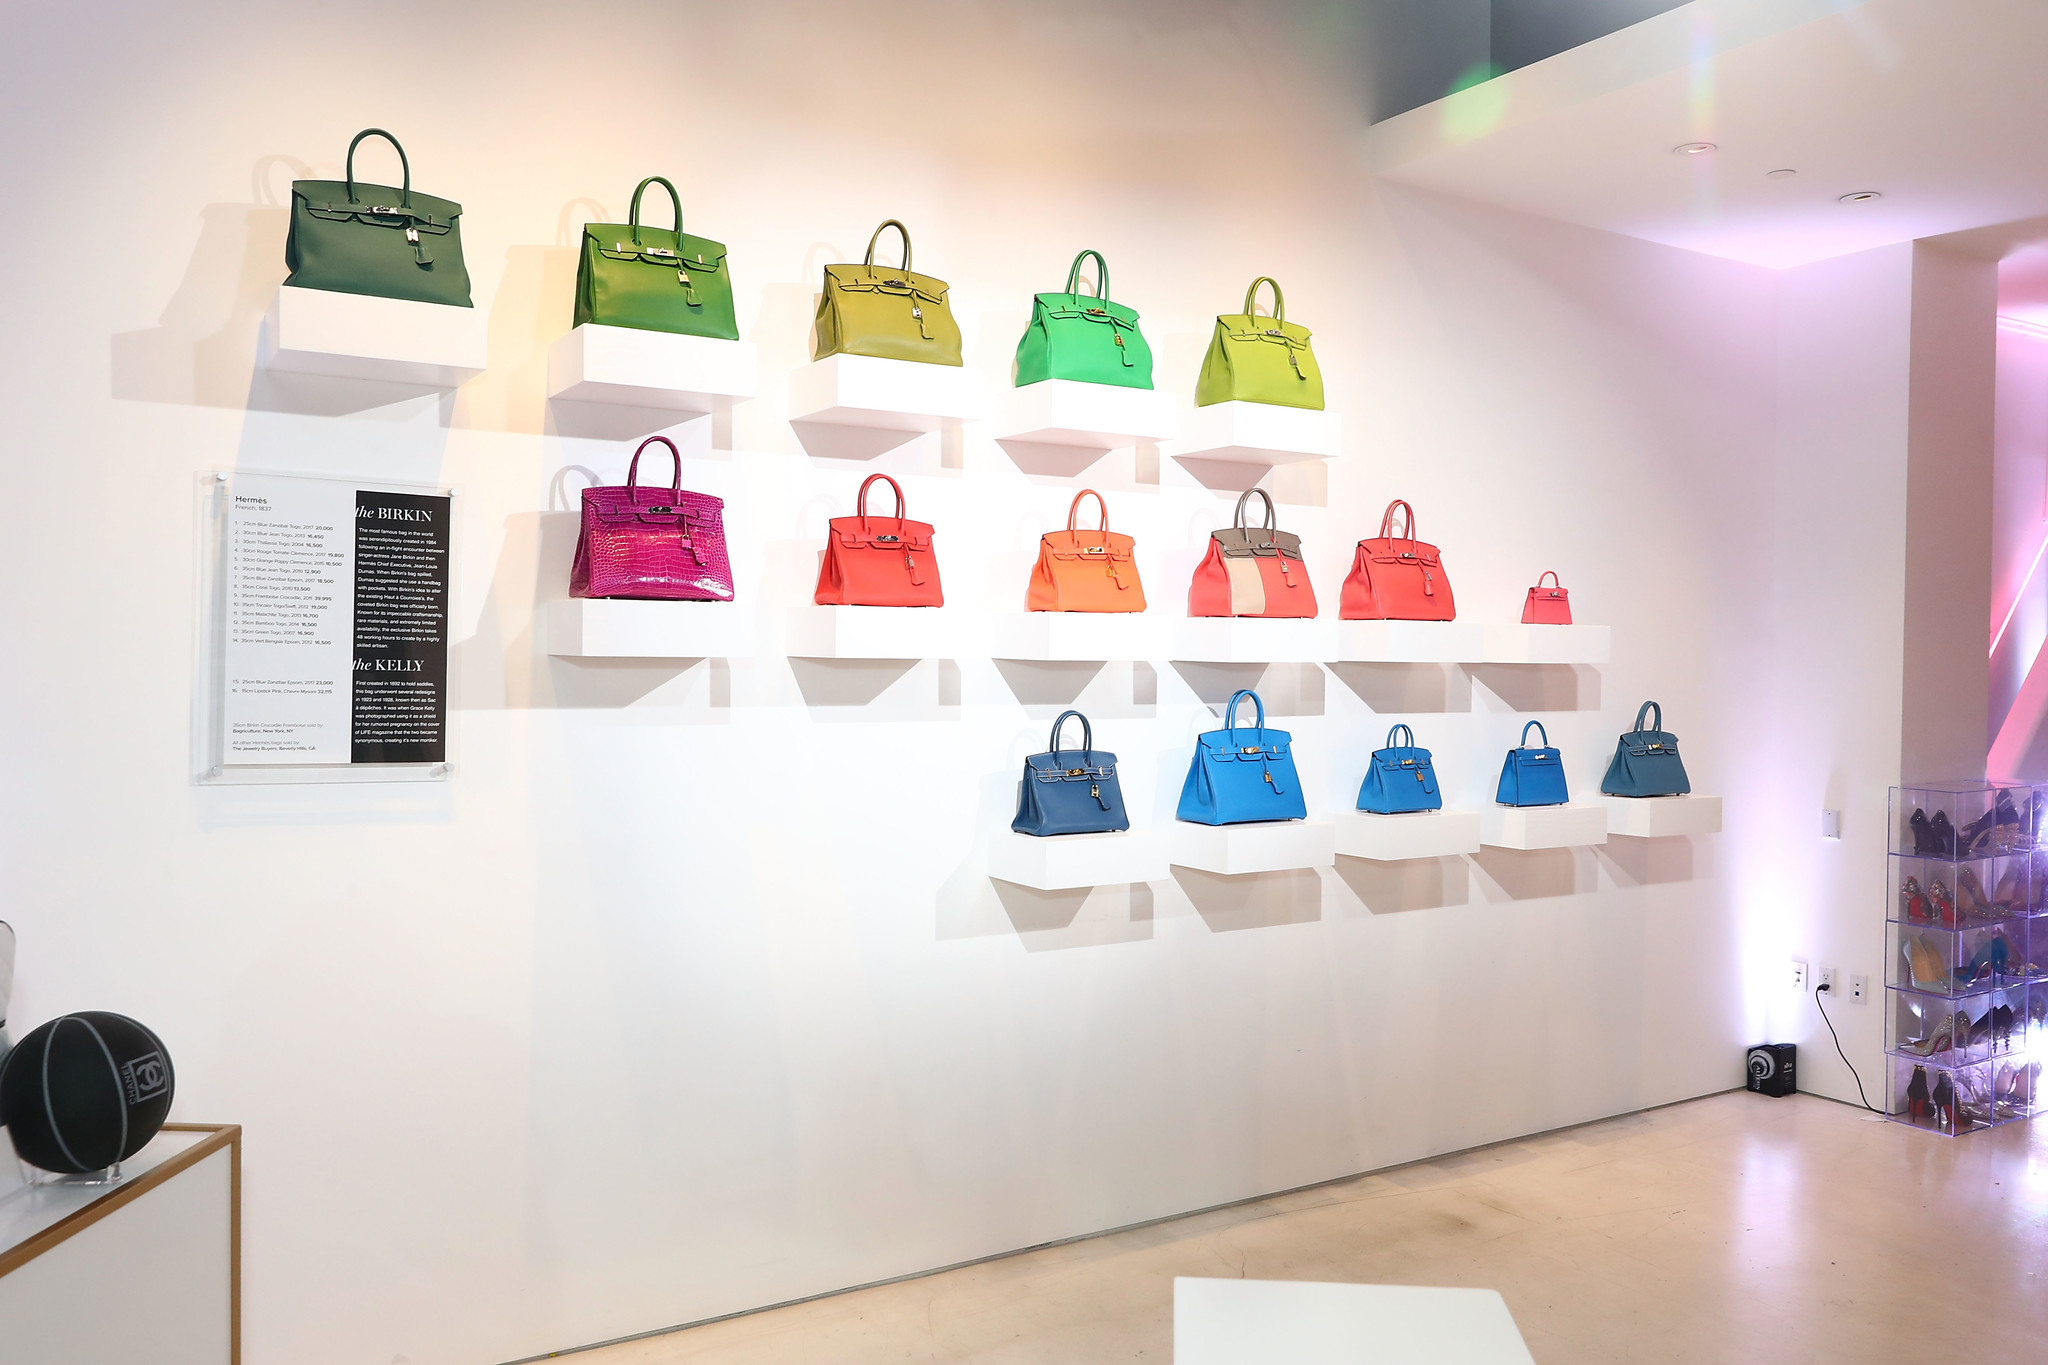 A selection of vintage Hermès Birkin bags are displayed art-gallery style in the new Tradesy space in Santa Monica.